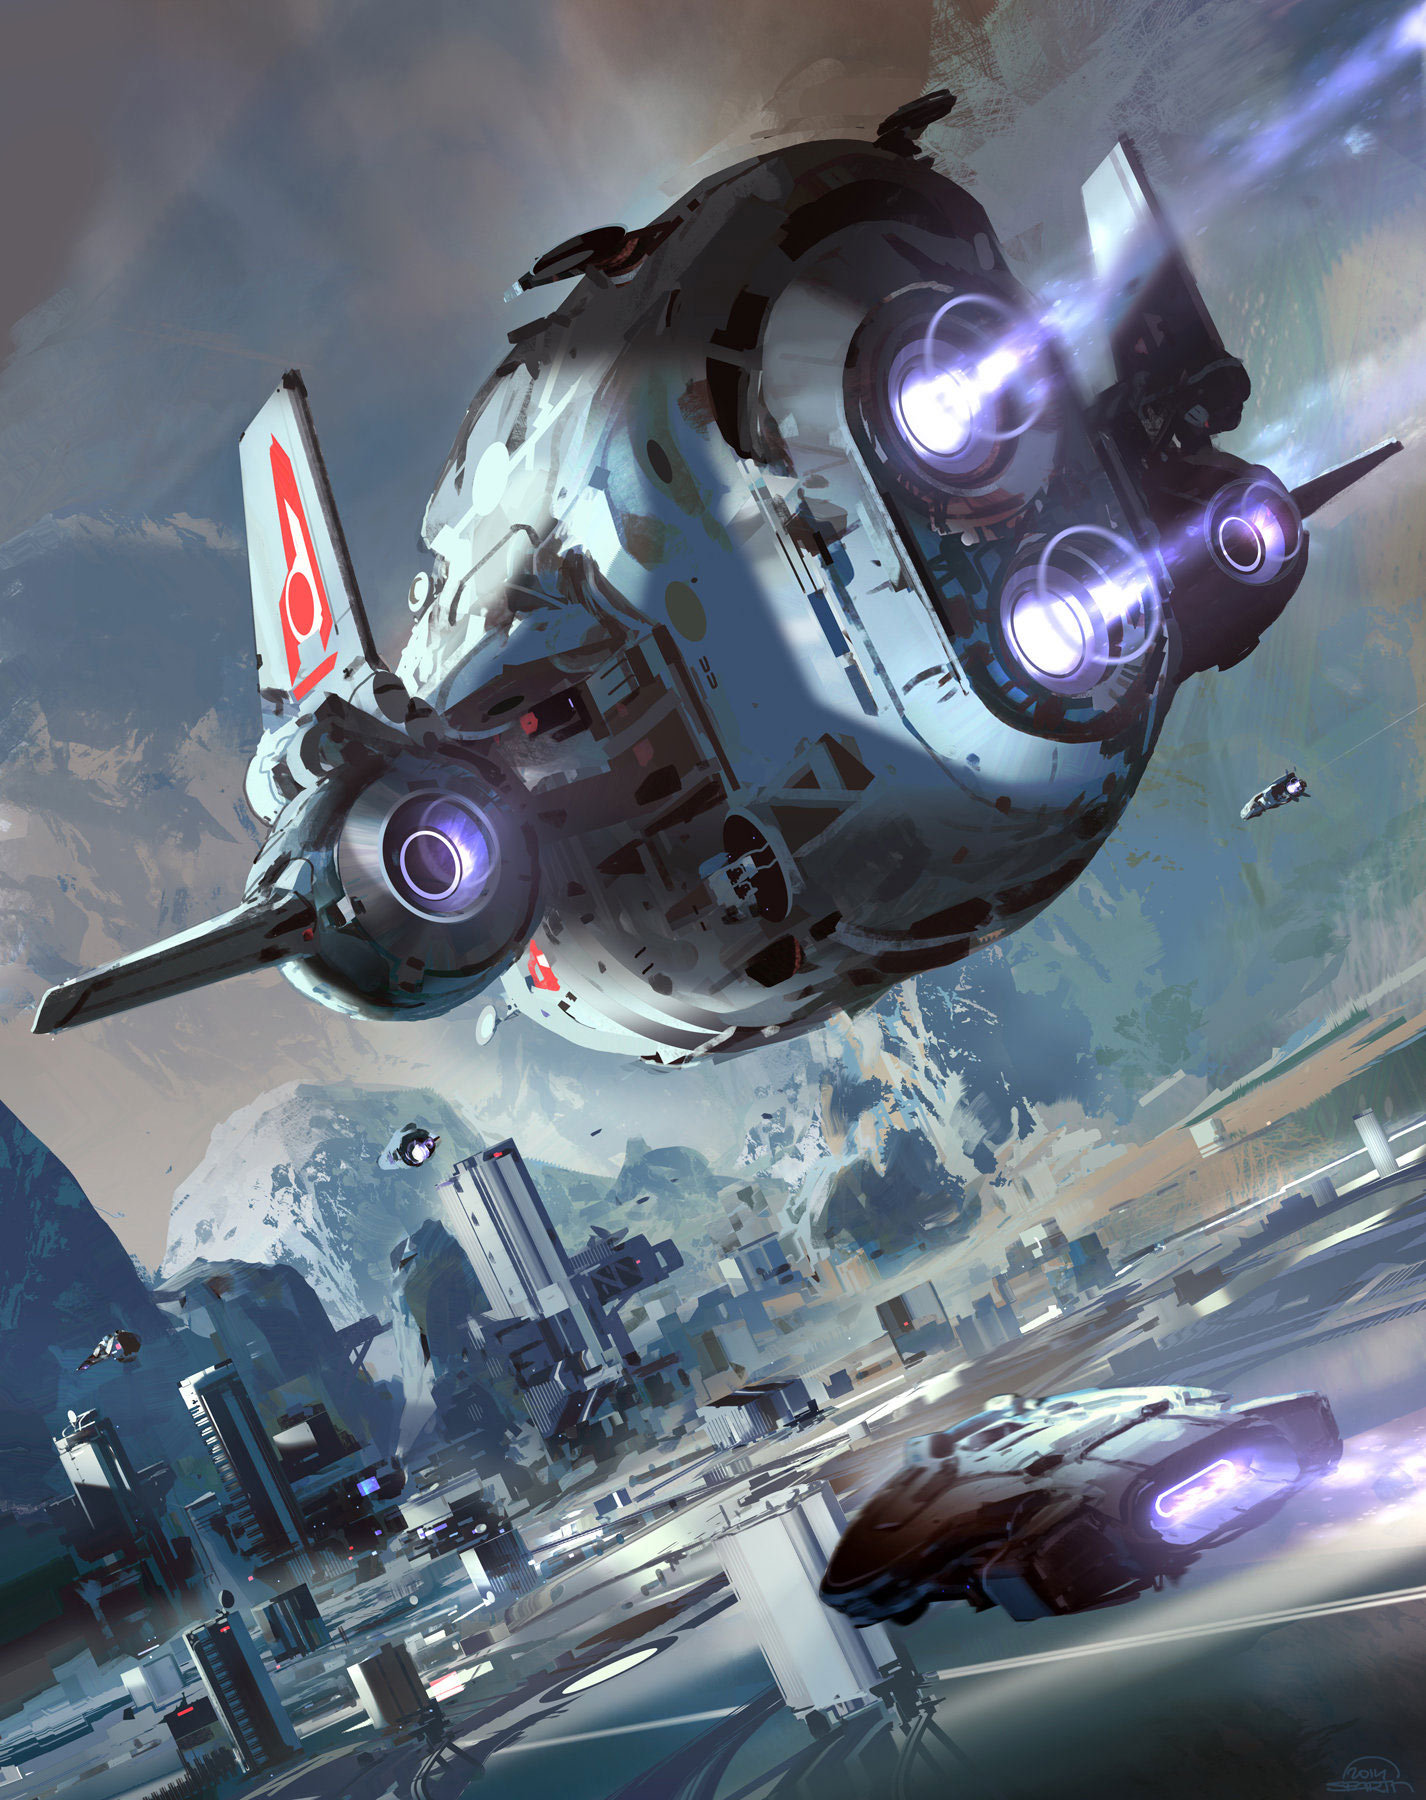 Sparth: Concept Ships: Spaceship Art By SPARTH